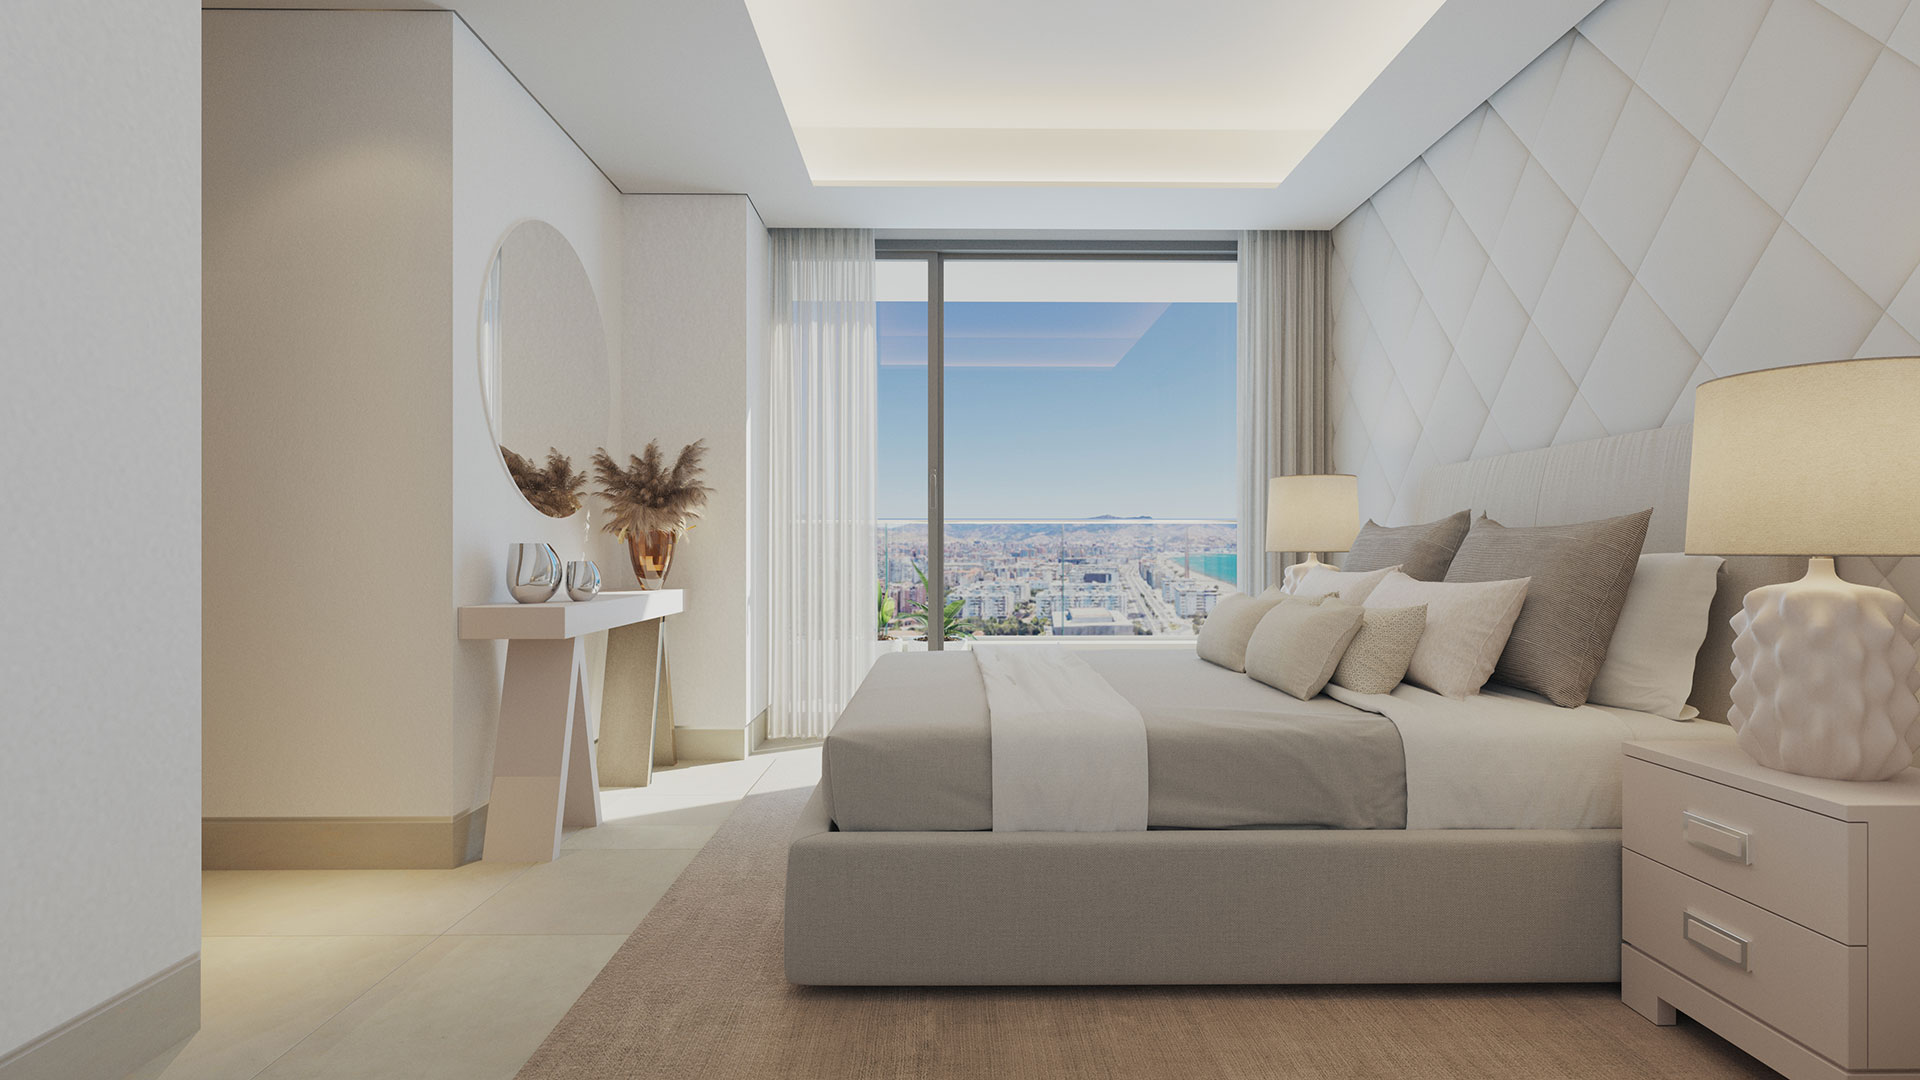 Malaga_towers_interiores_dormitorio_A